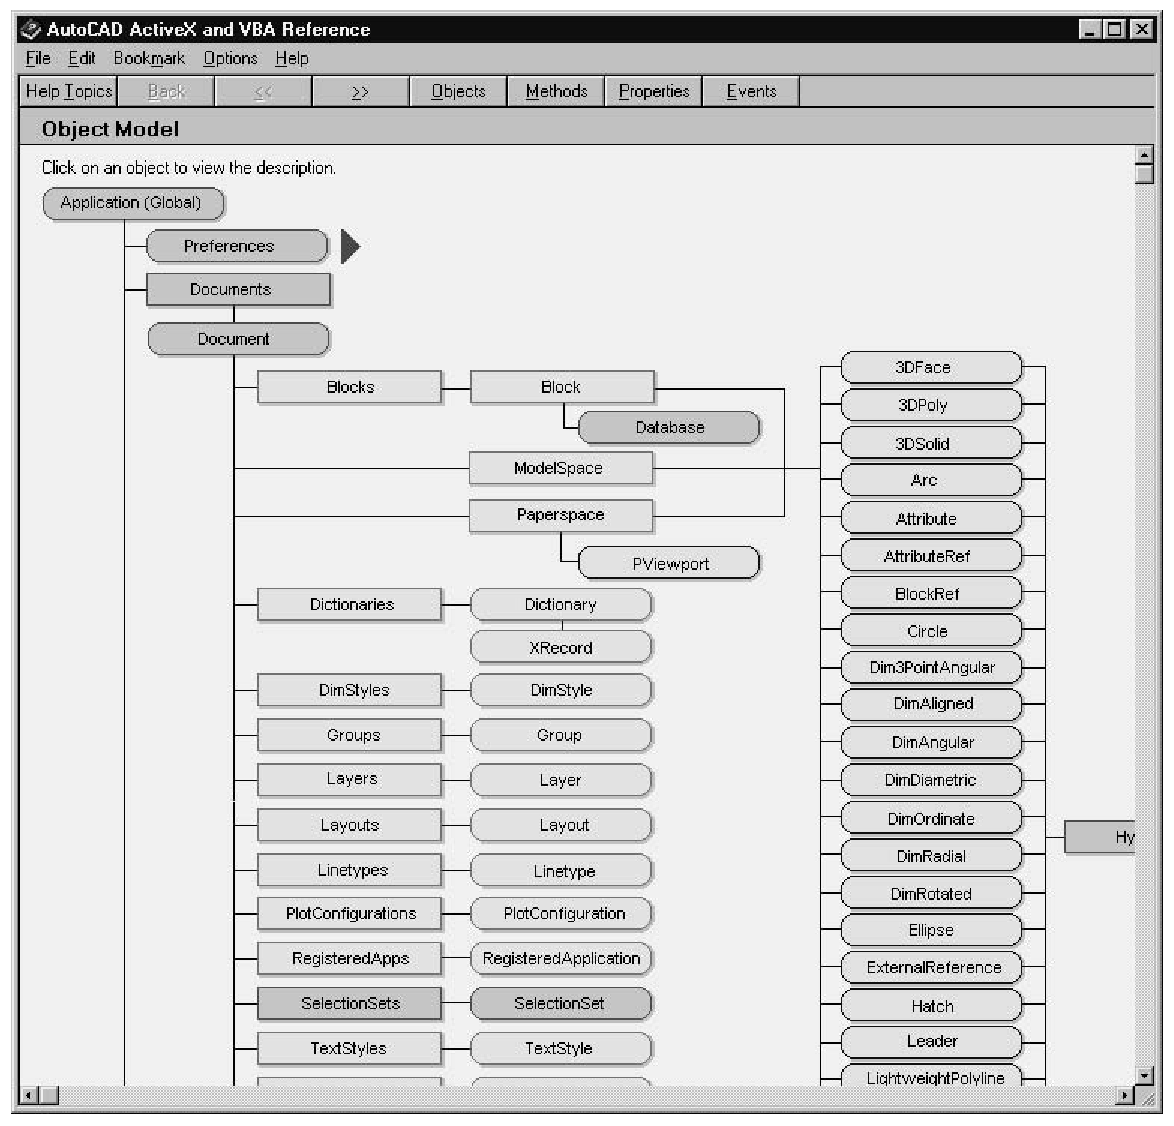 Overview of Objects, Properties, Methods, and Events (VBA